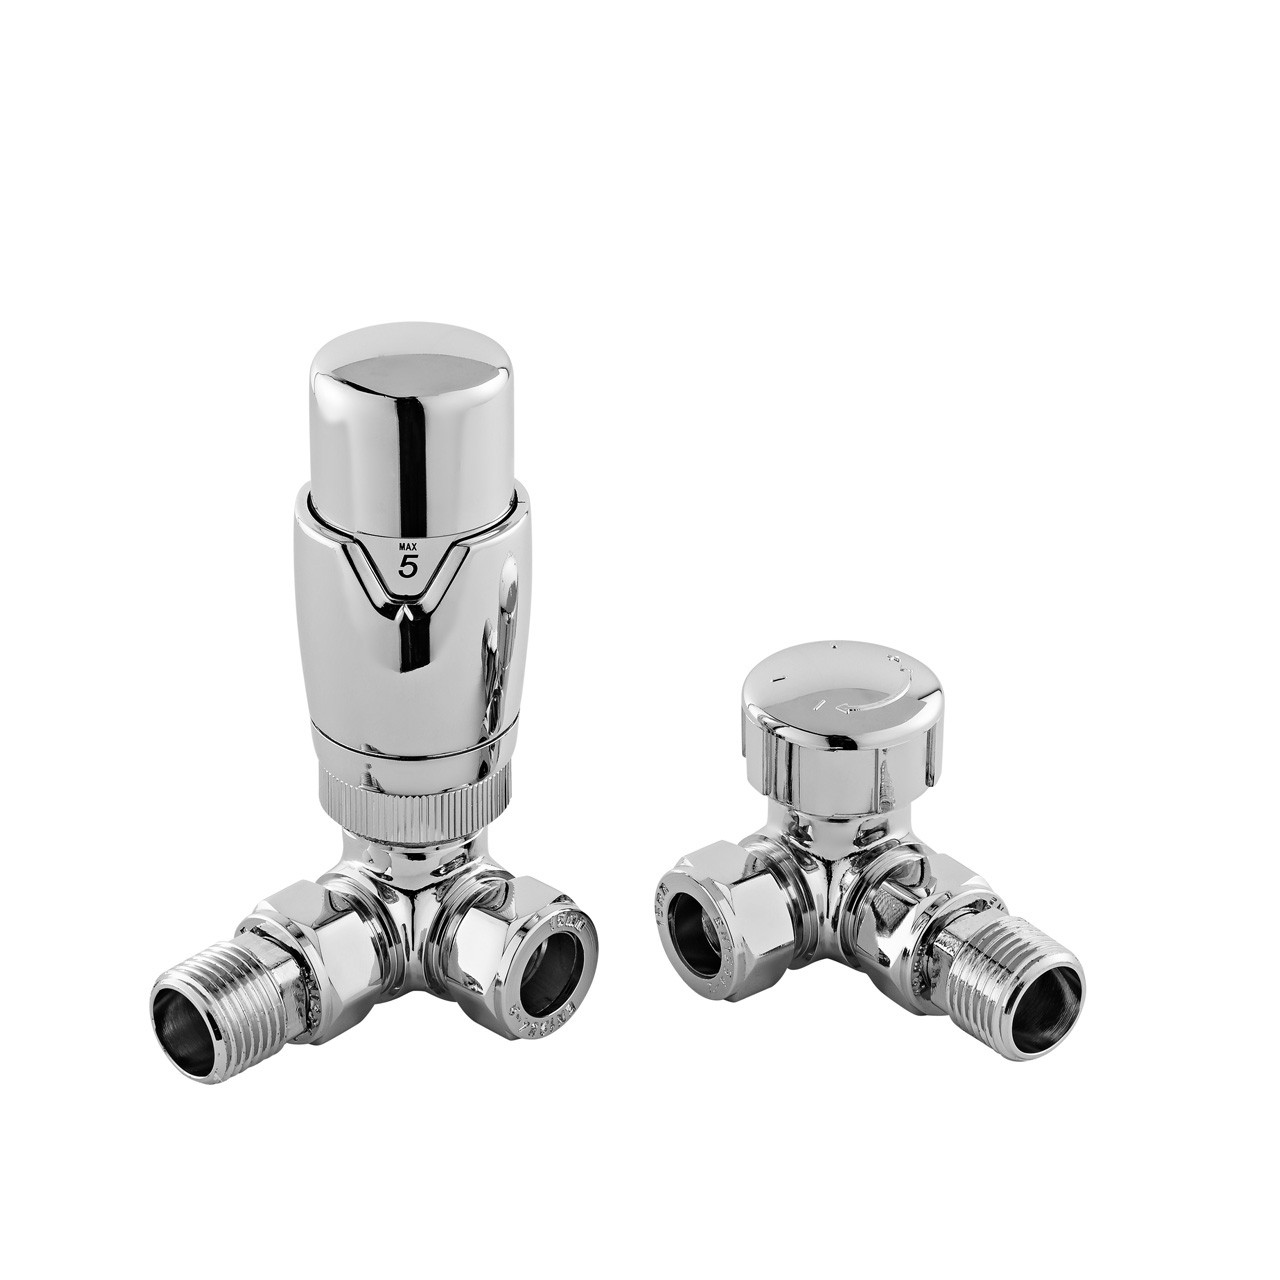 Nuie Corner Thermostatic Radiator Valves - HT317